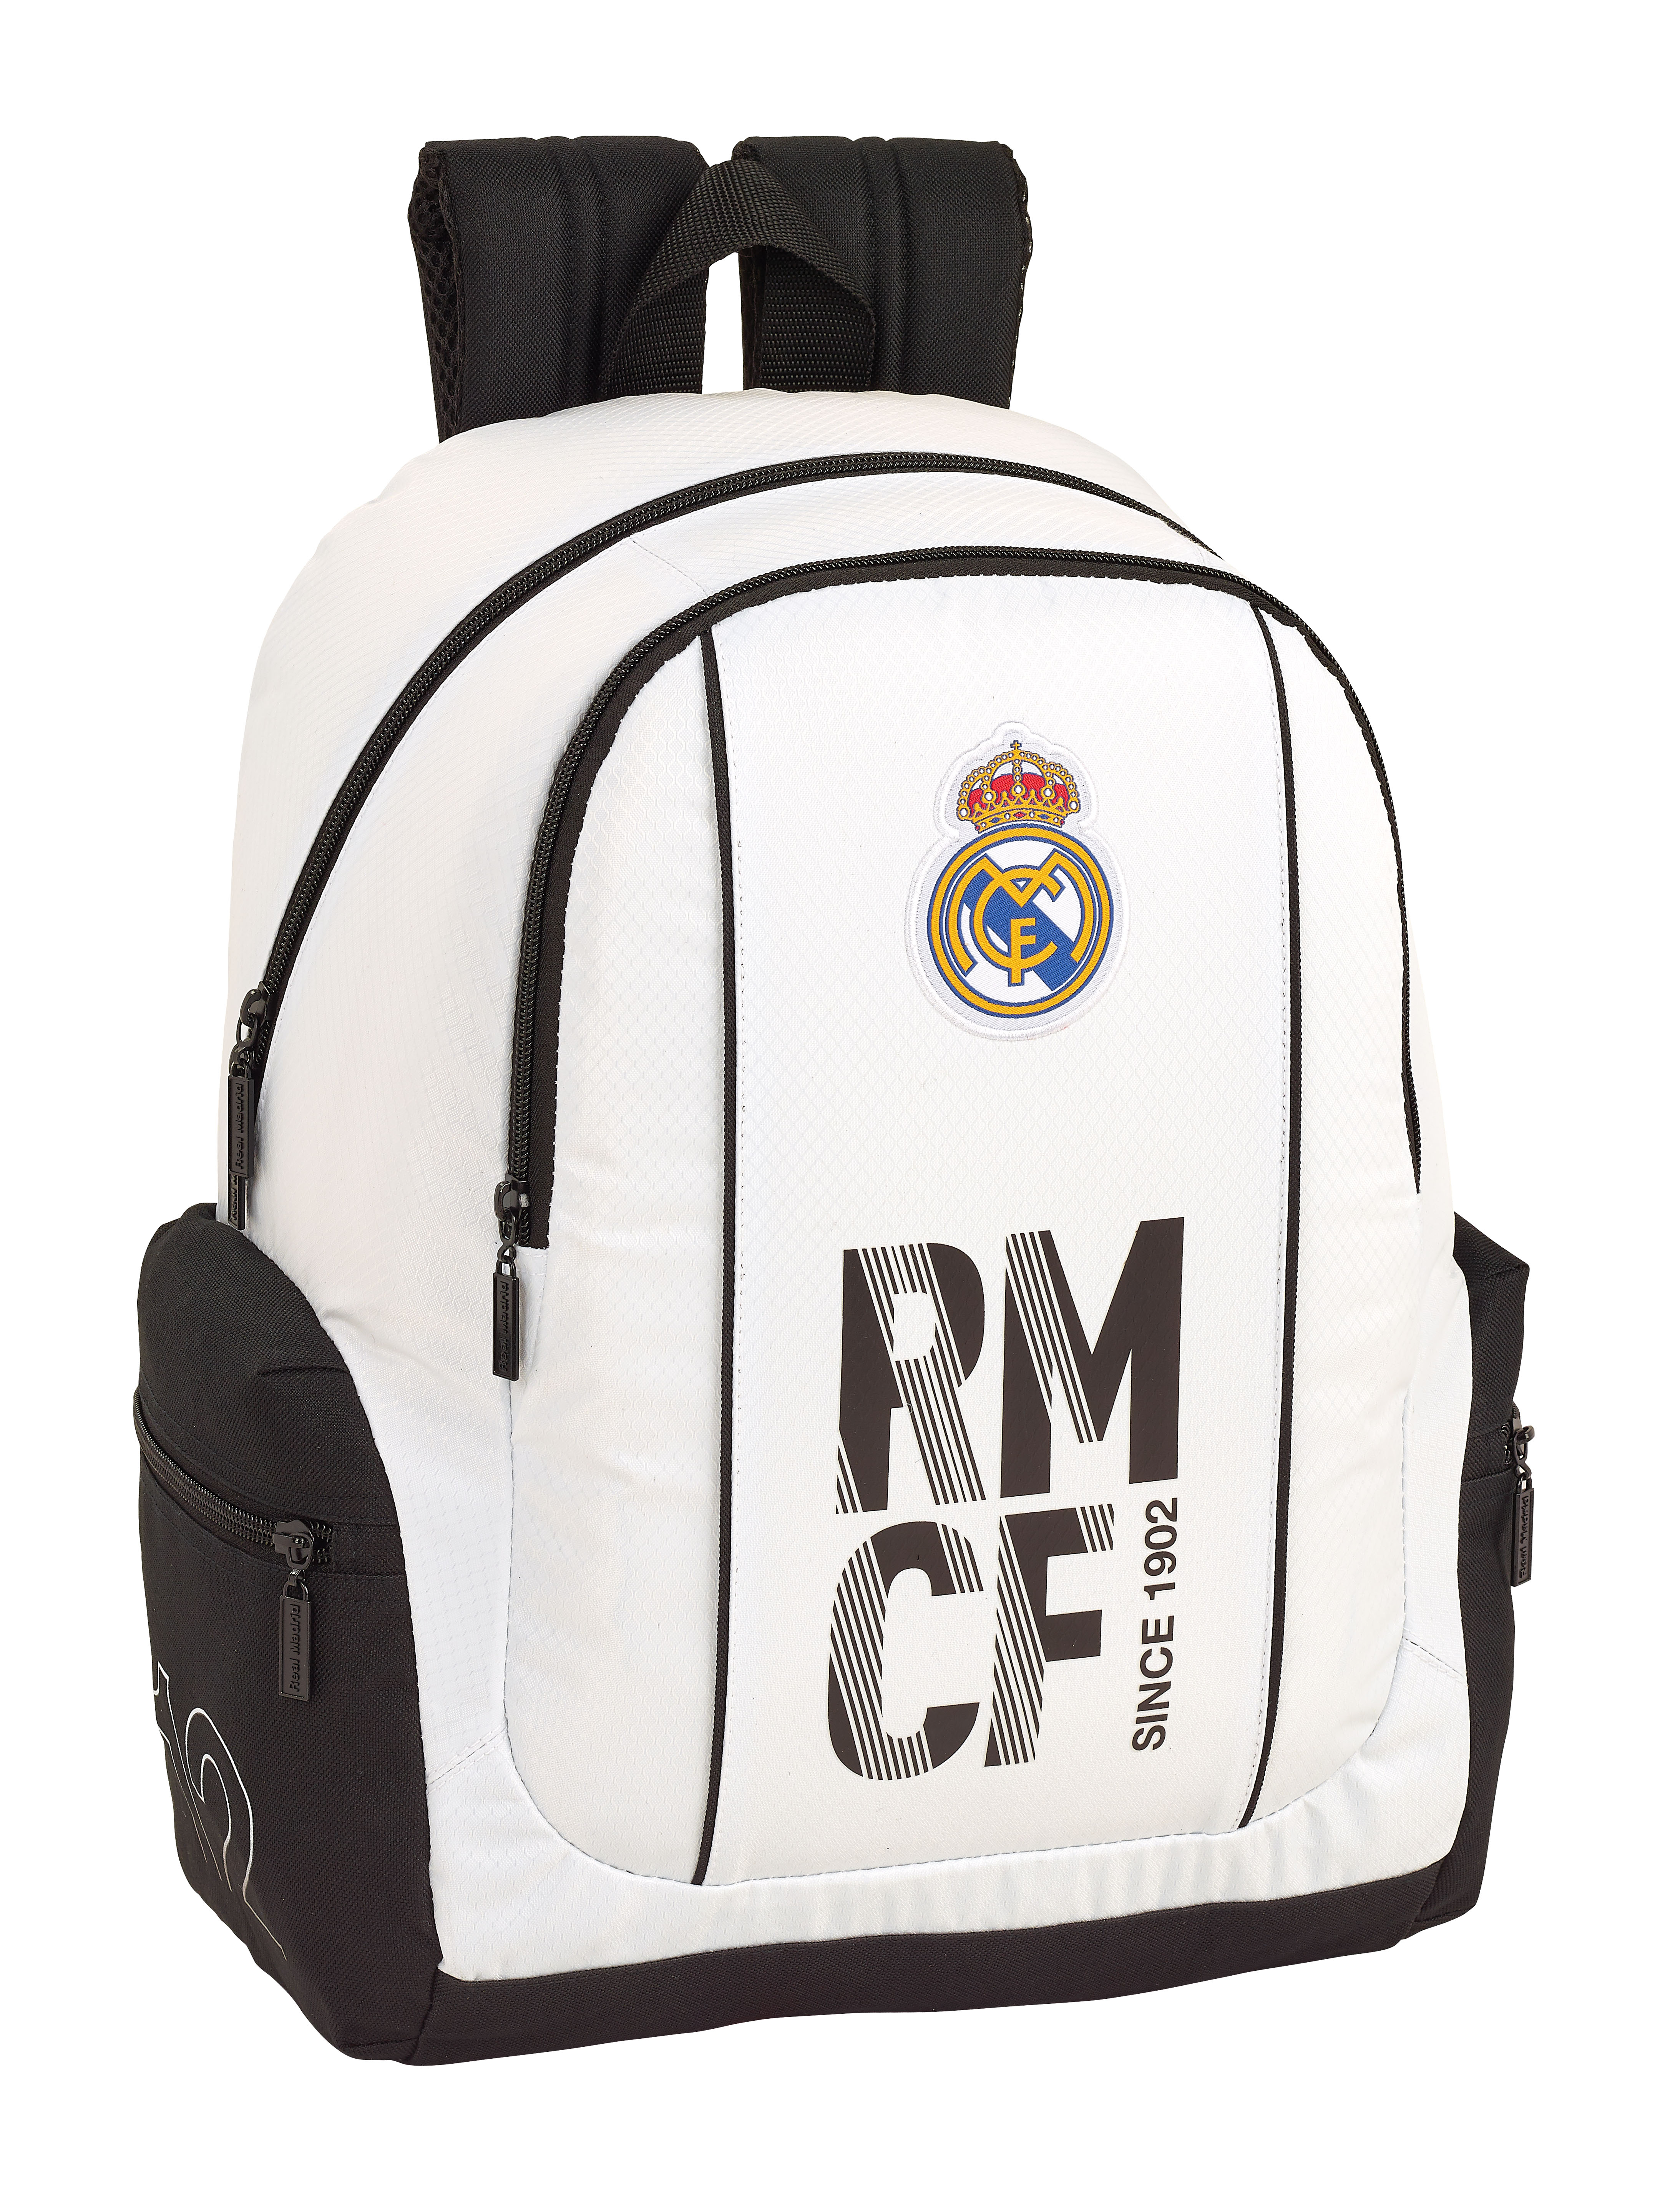 MOCHILA ADAPT.CARRO REAL MADRID 1º EQUIP.611854662